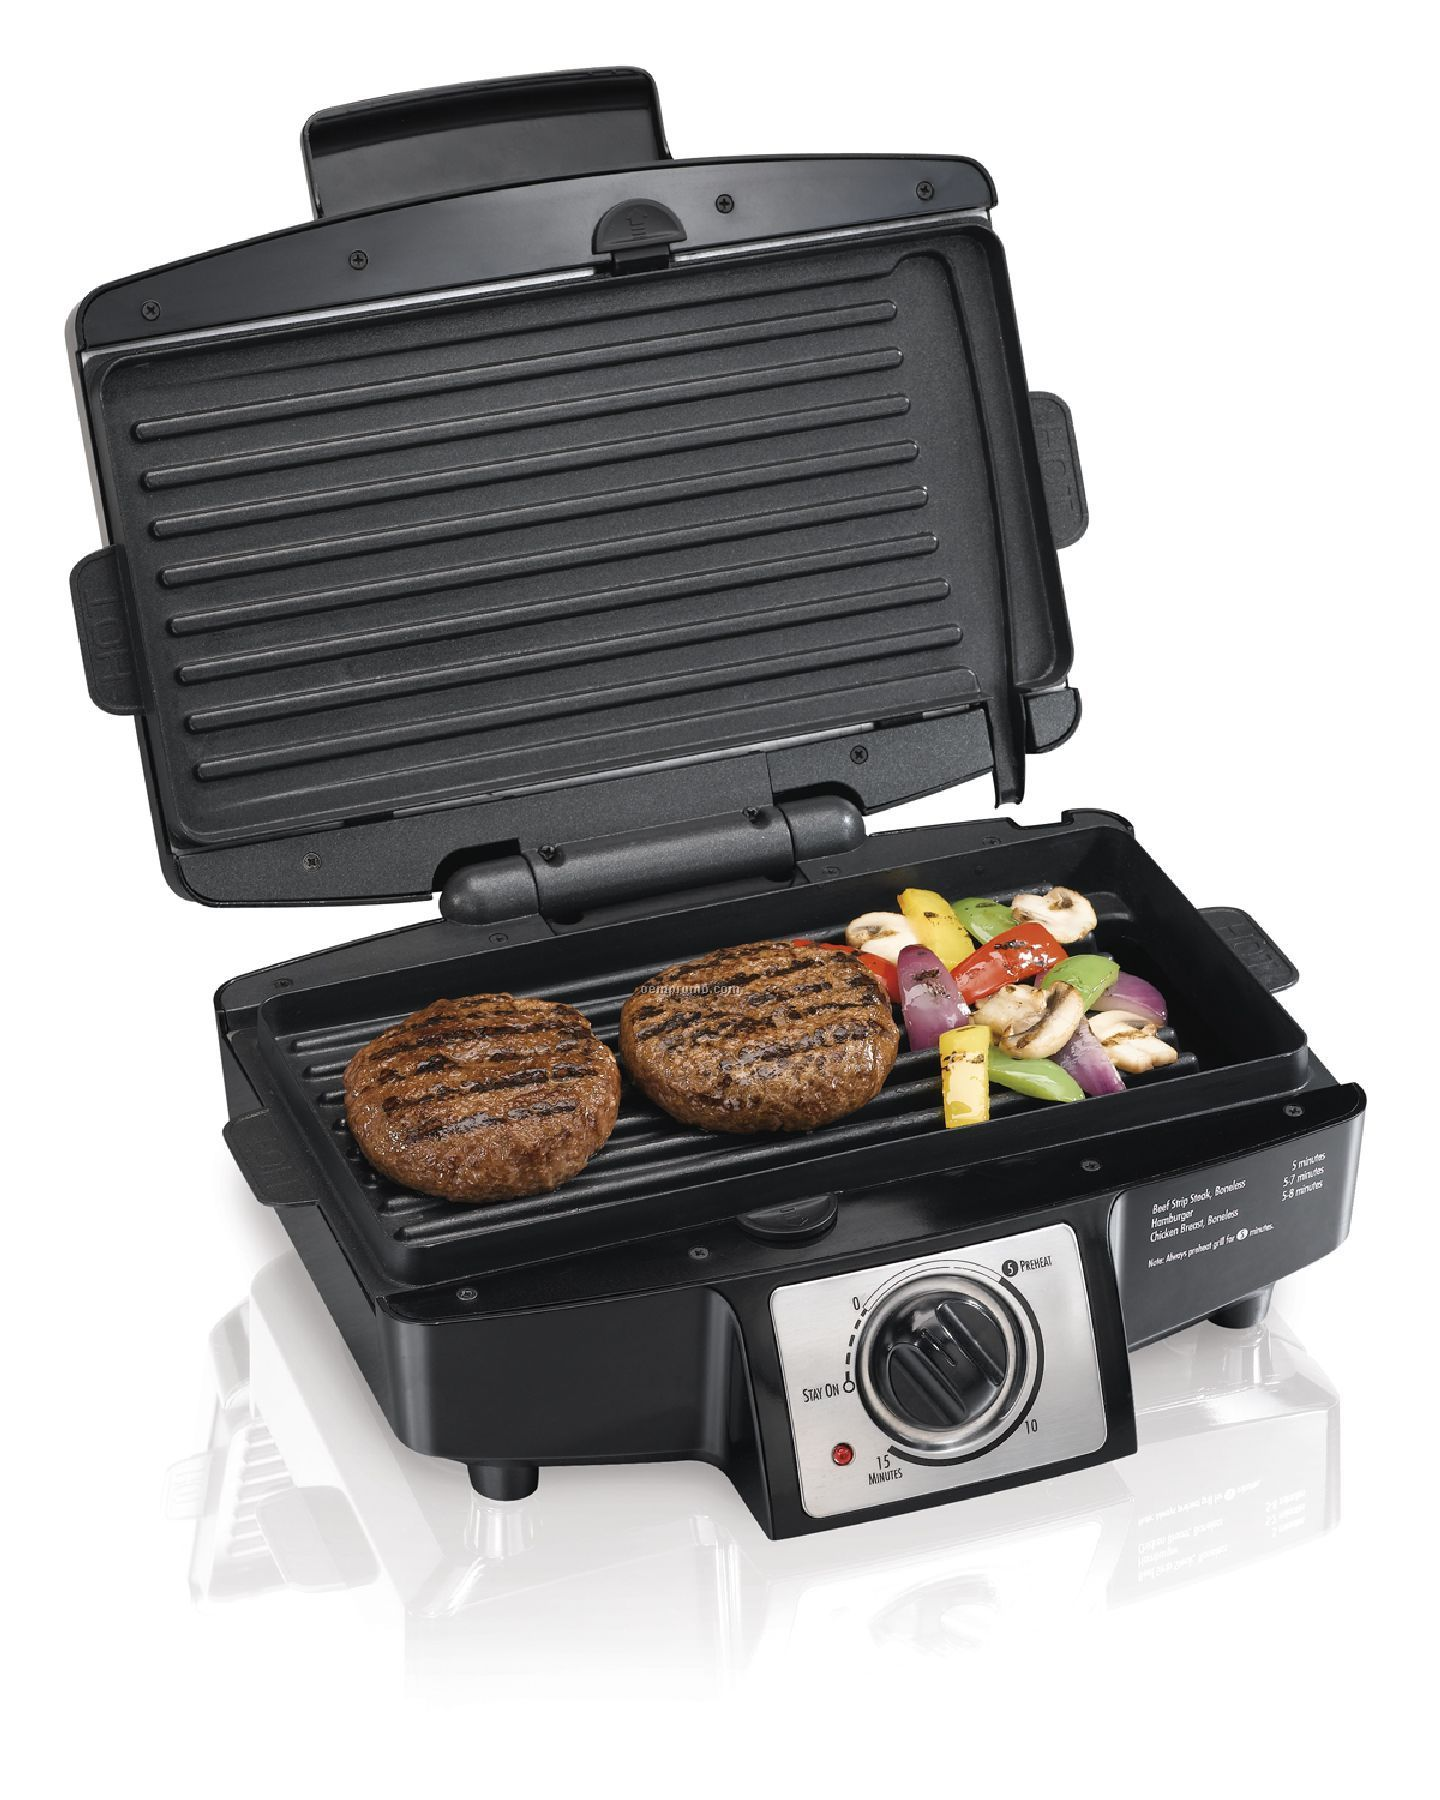 Hamilton Beach - Indoor Grills - Indoor Grill - Removable Plate